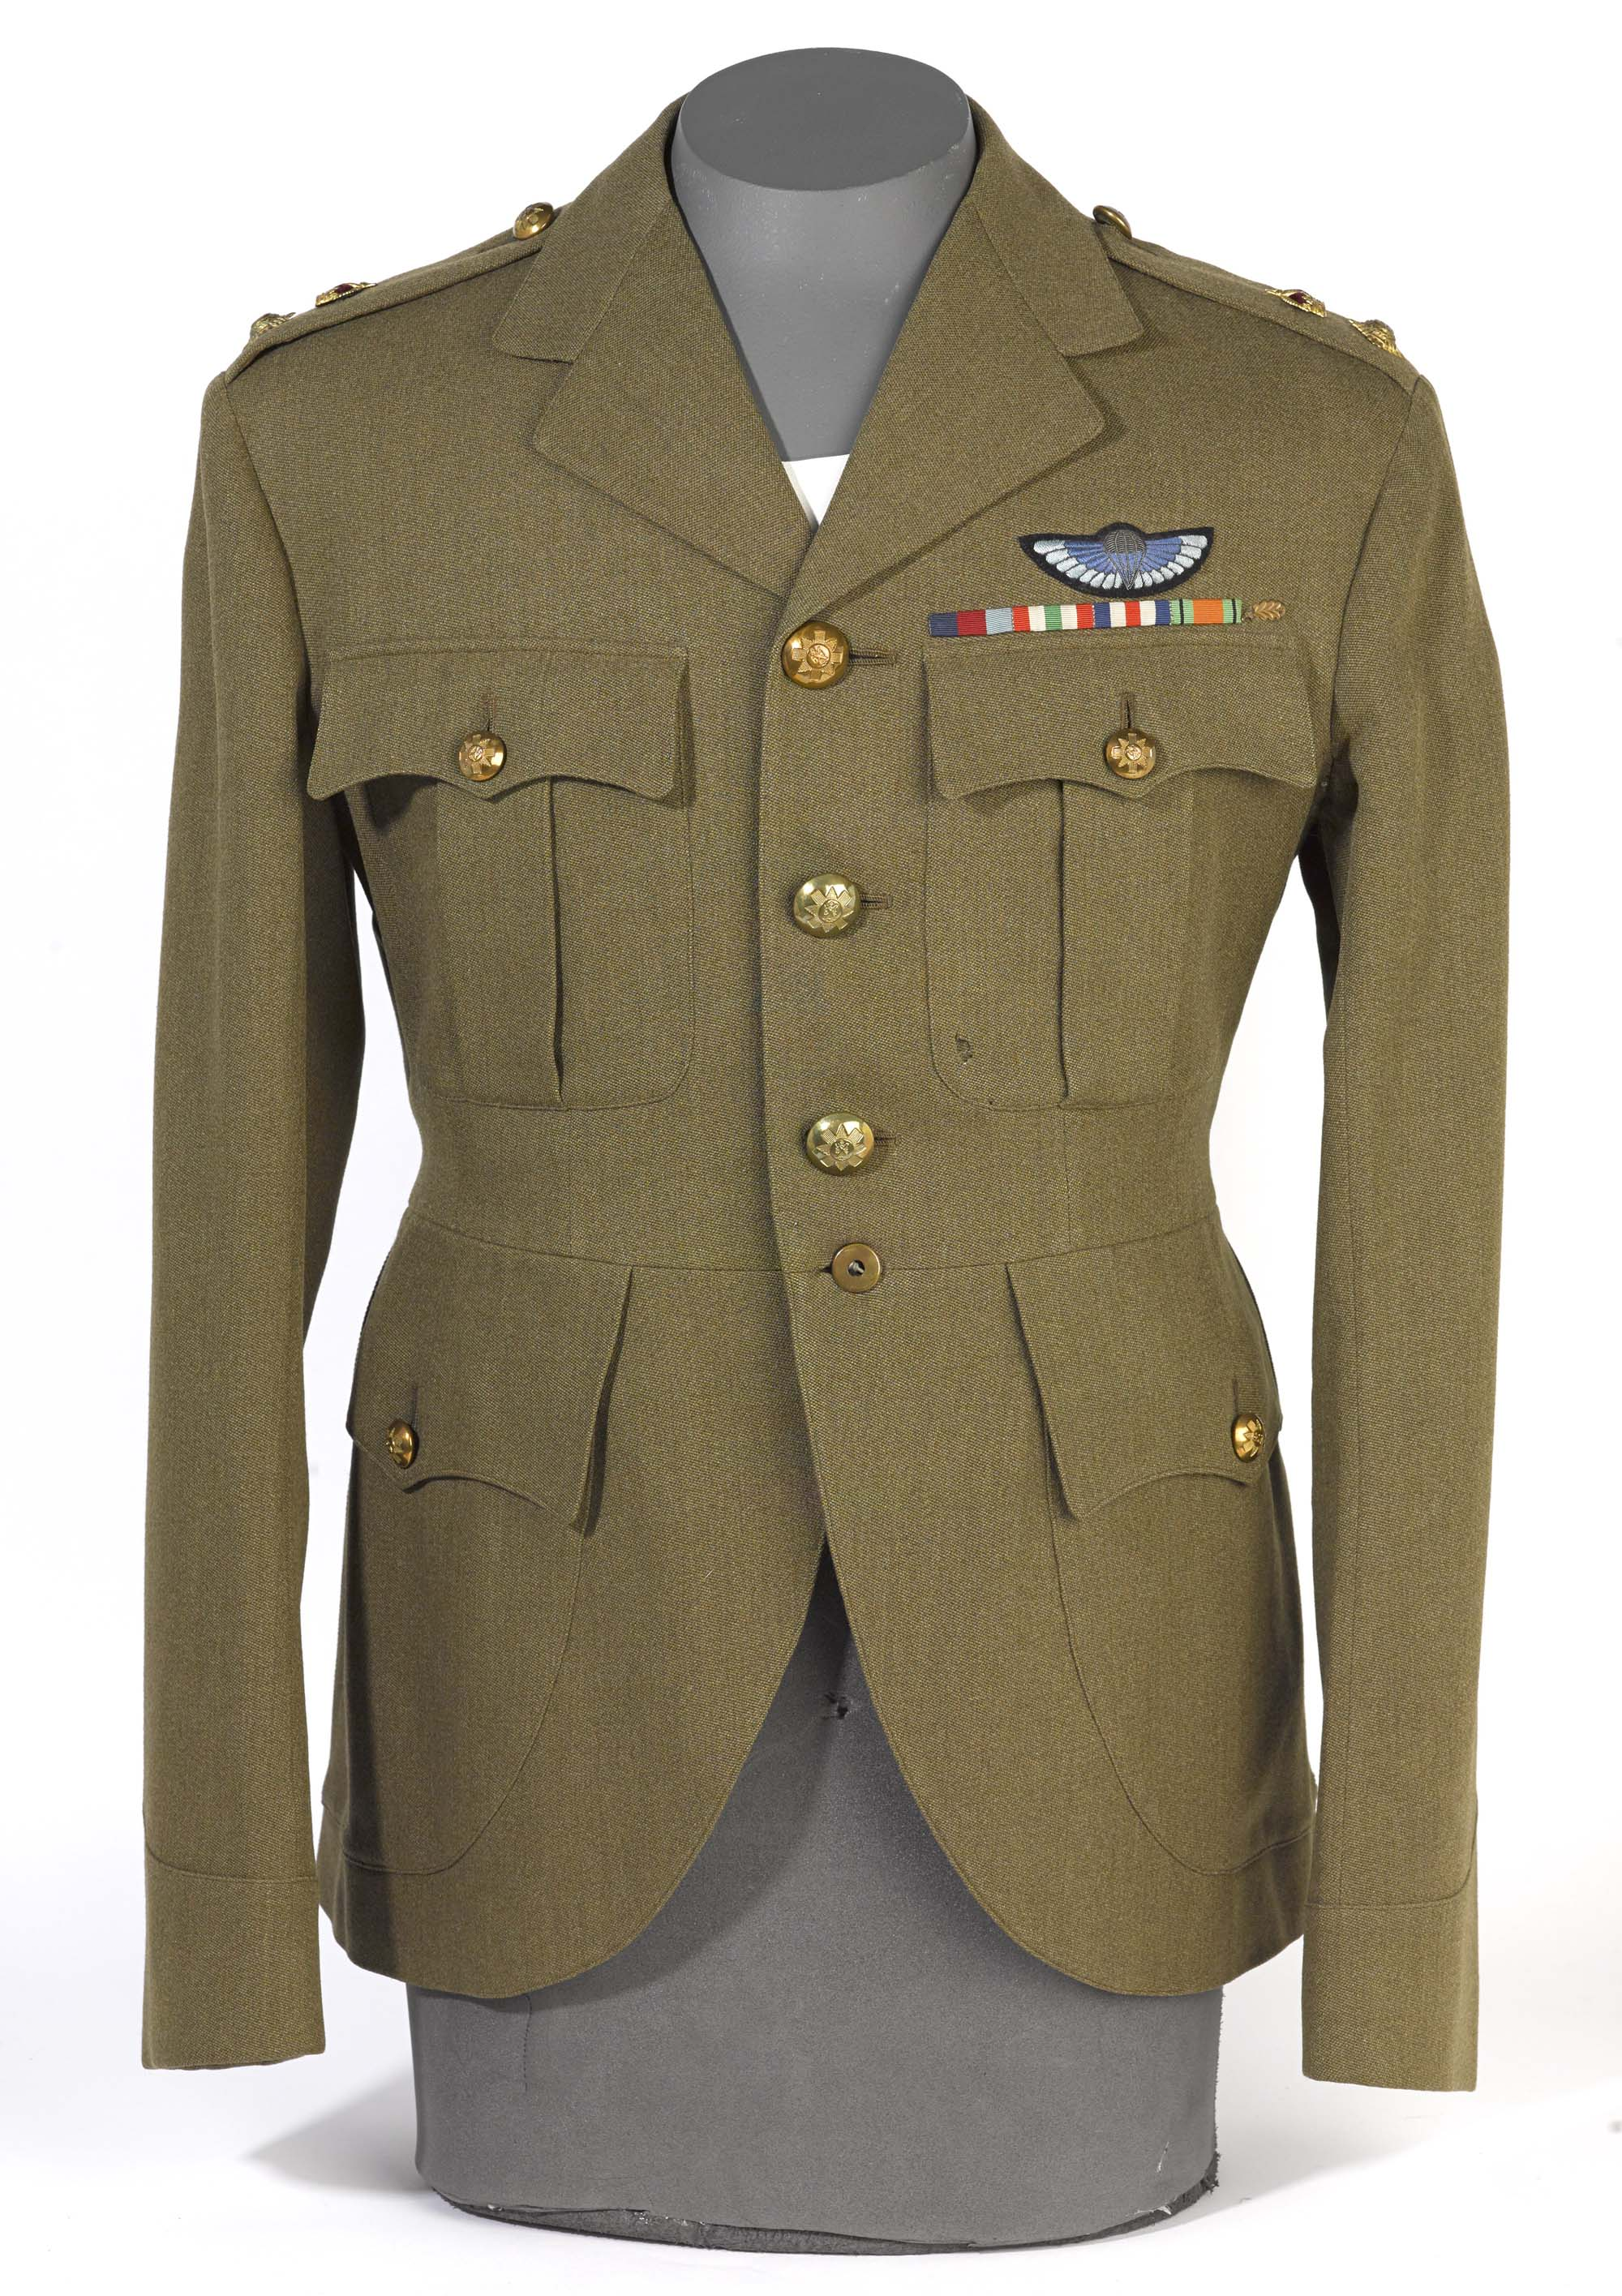 a photo of an army officer's tunic